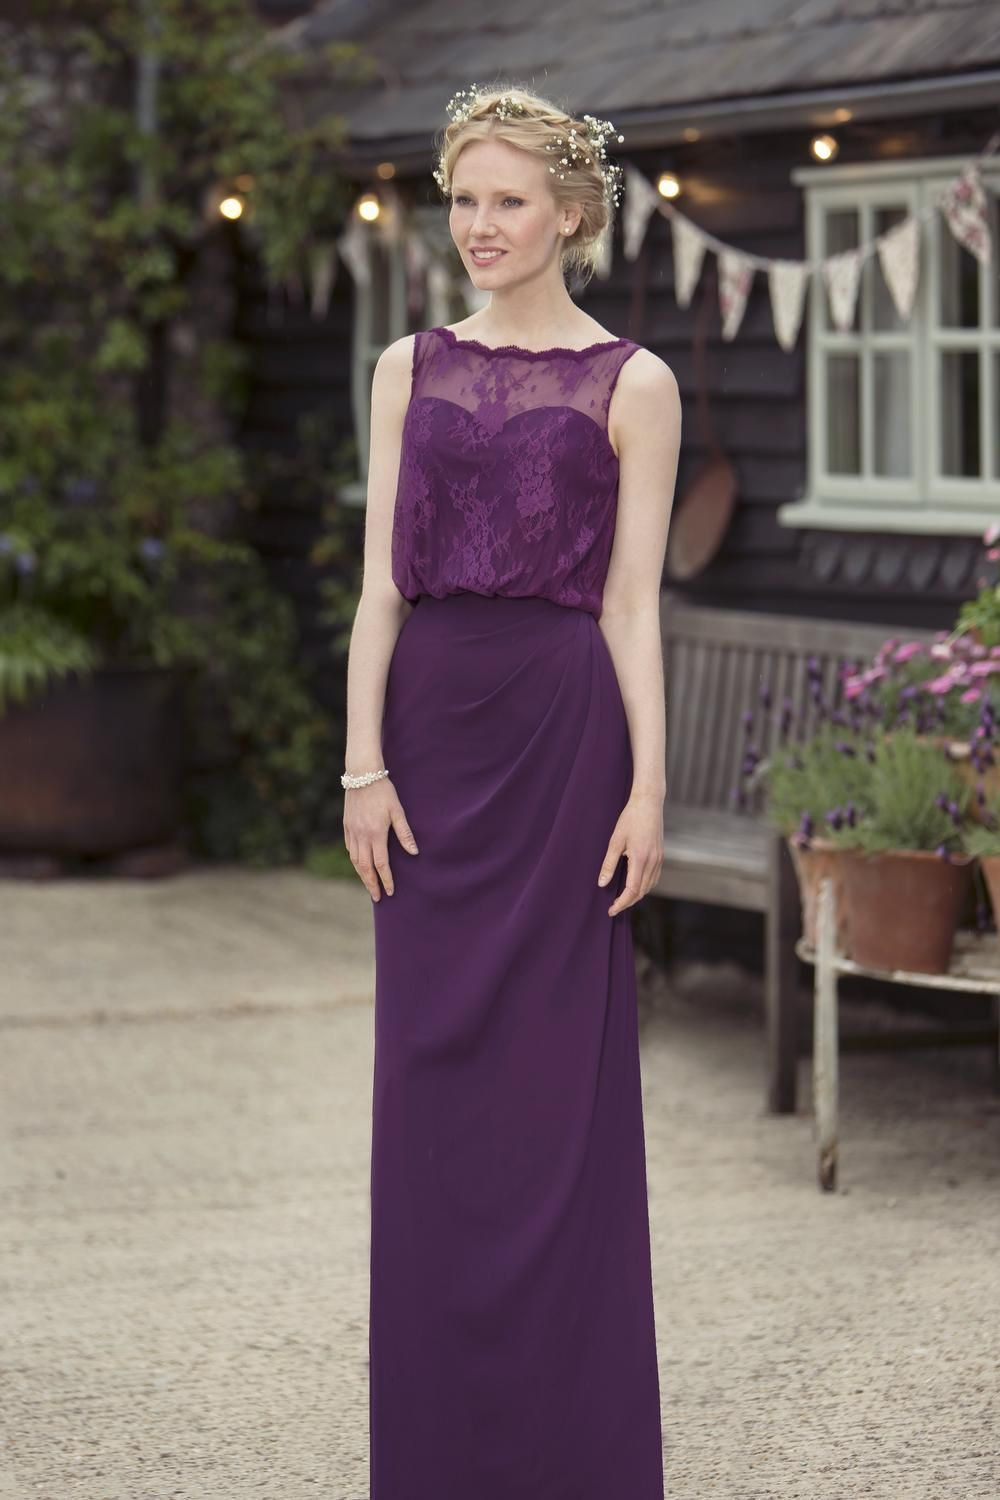 Affordable Bridesmaid Dresses Image collections - Braidsmaid Dress ...